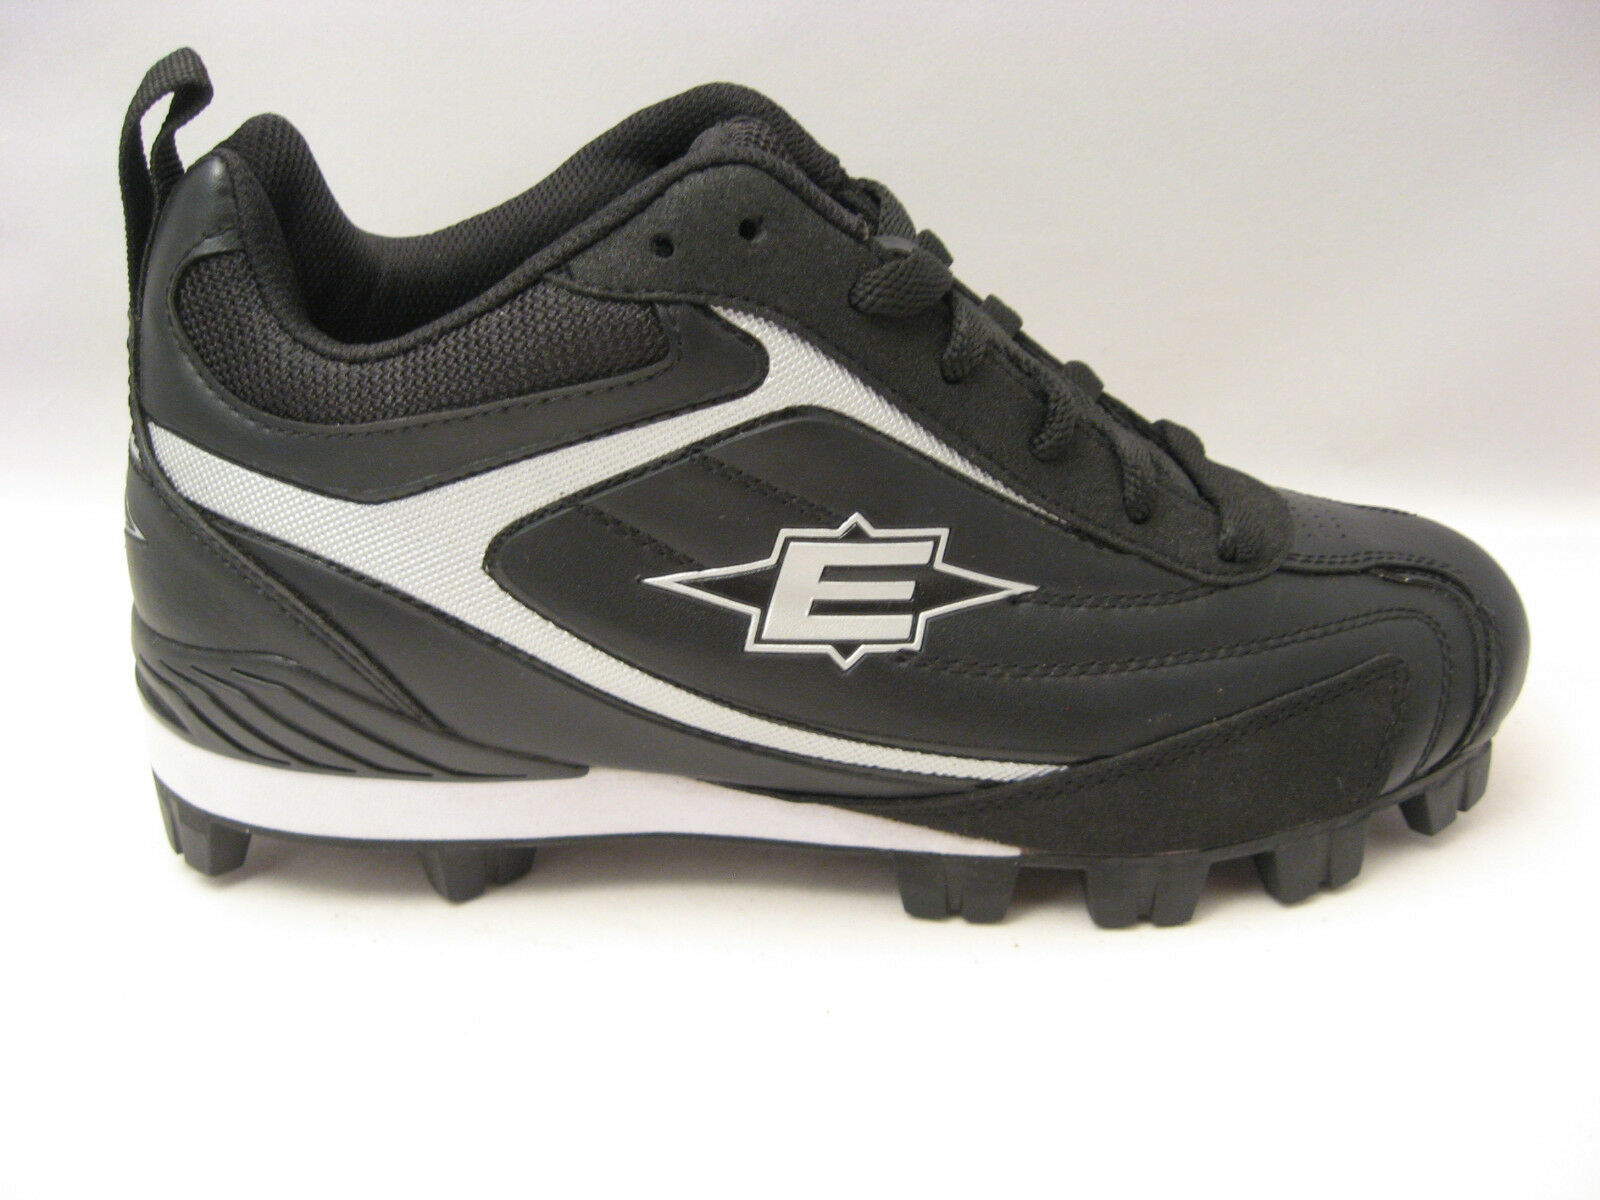 Easton Mens Redline II Mid Baseball & Softball Cleats Size 7.5 Black Silver NEW